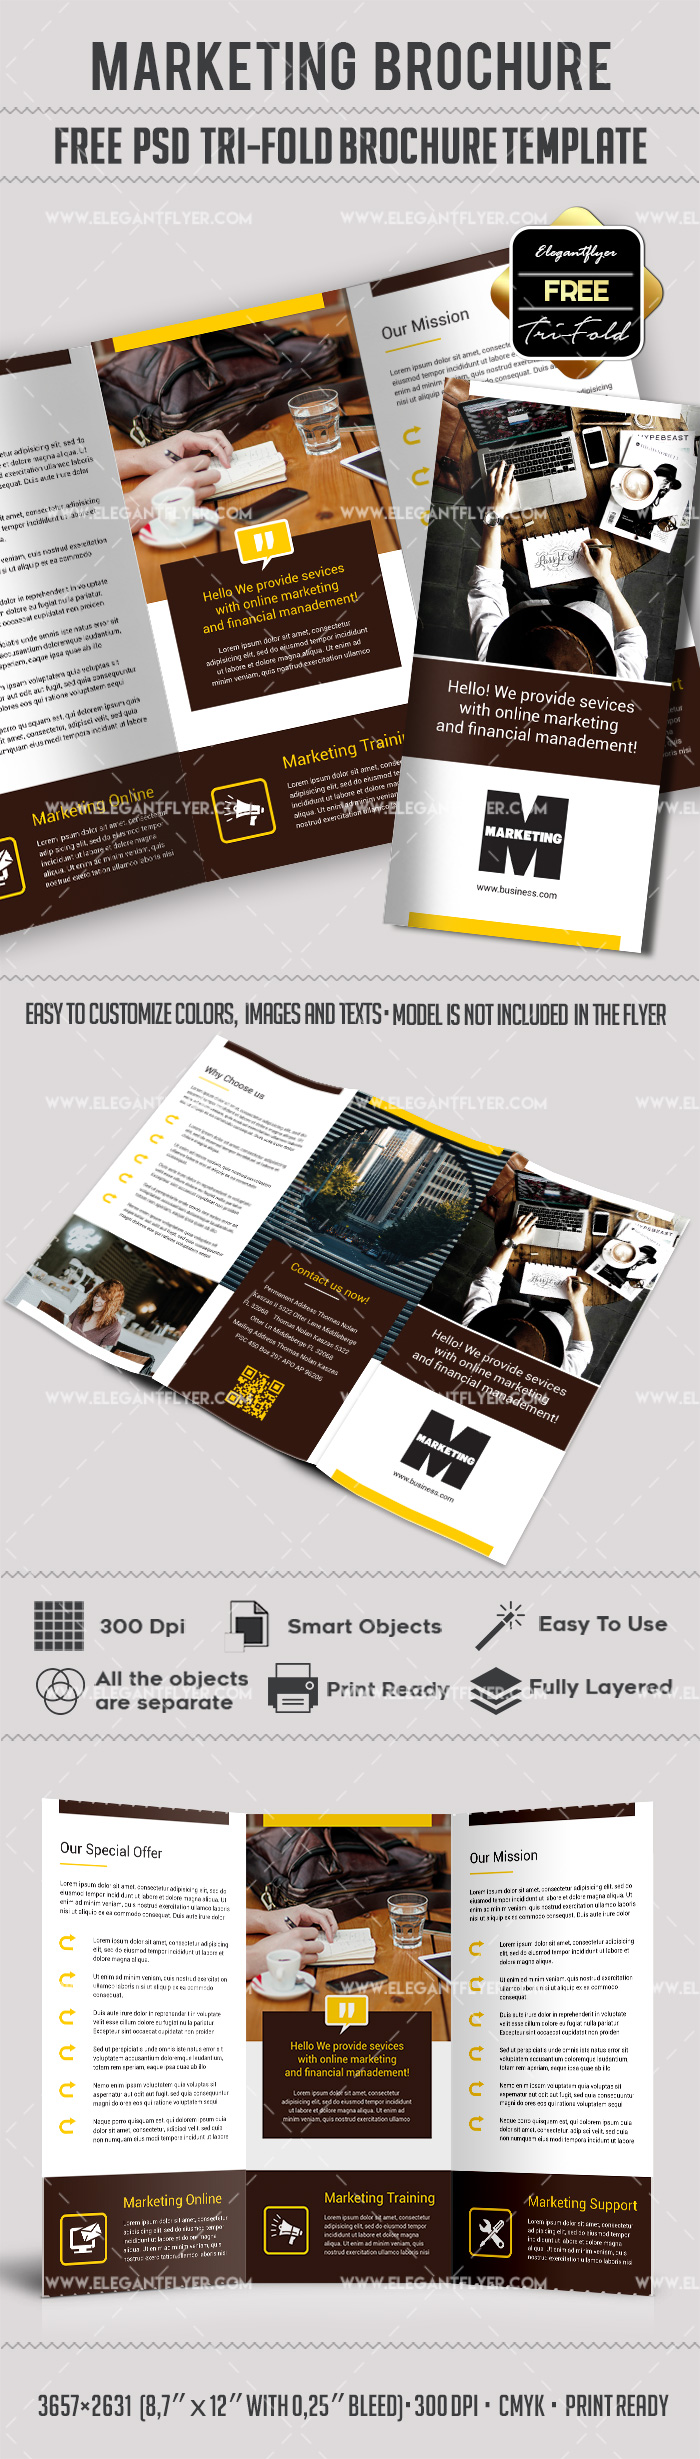 brochure tri fold templates free - marketing free tri fold psd brochure template by